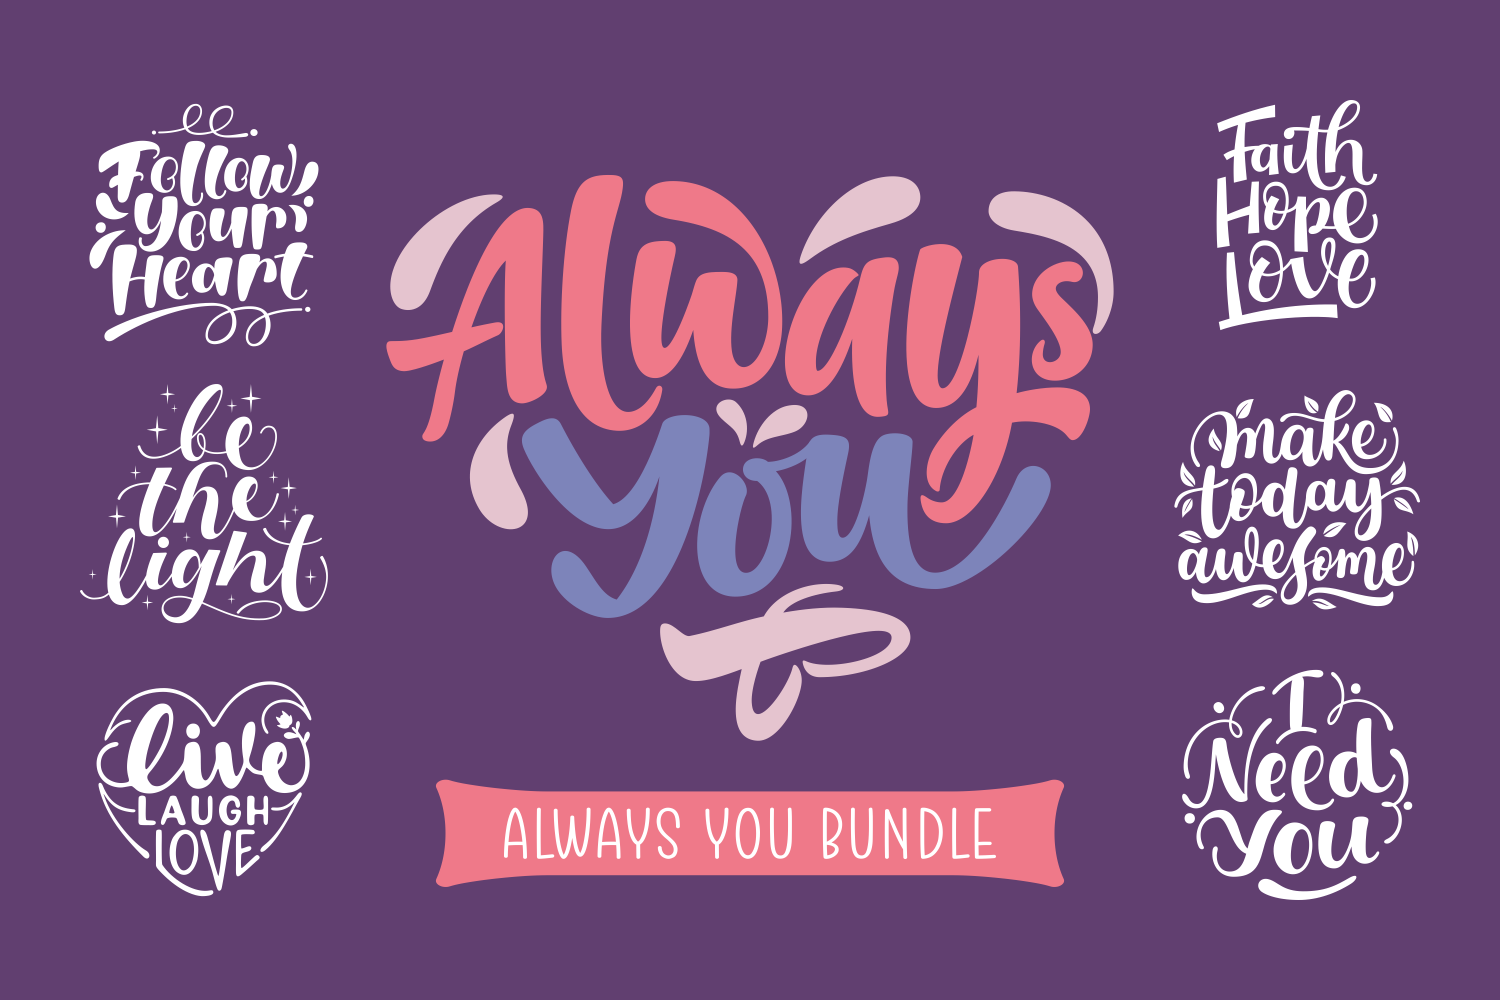 Download Free Always You Bundle Graphic By Momentos Crafter Creative Fabrica for Cricut Explore, Silhouette and other cutting machines.